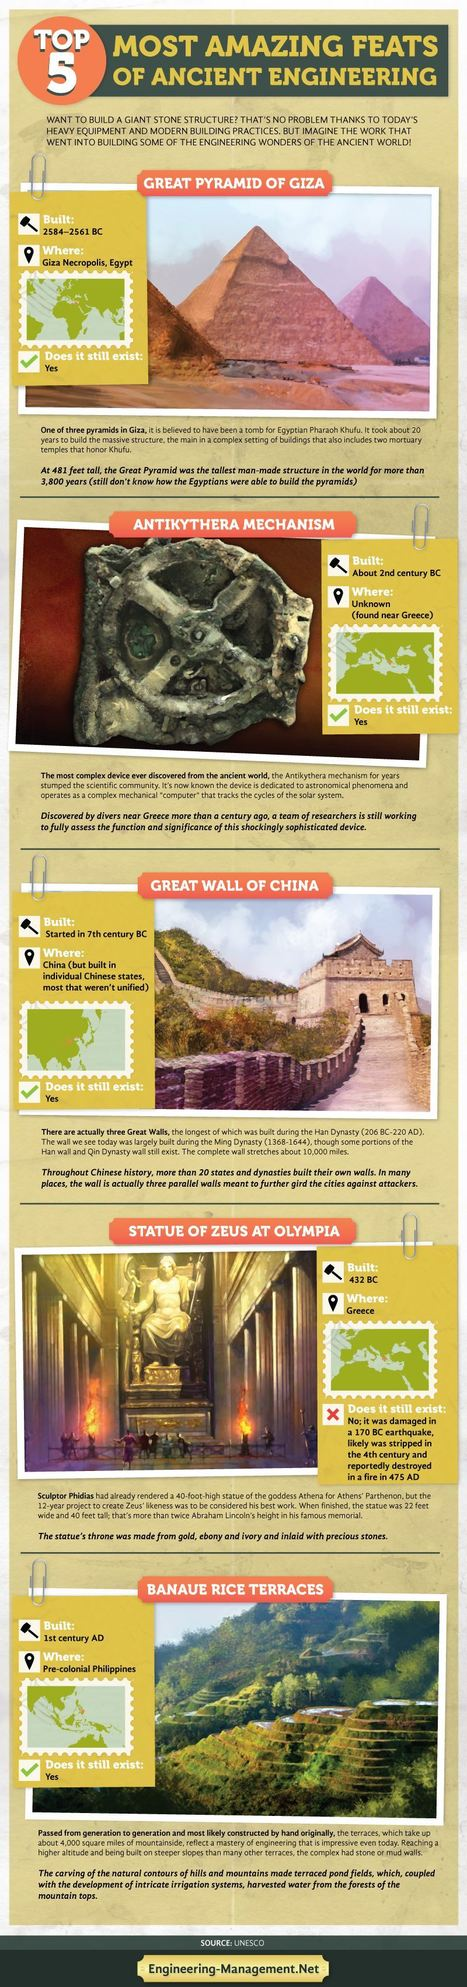 Top 5 Amazing Ancient Engineering Feats Showcase | All Infographics | All Infographics | Scoop.it